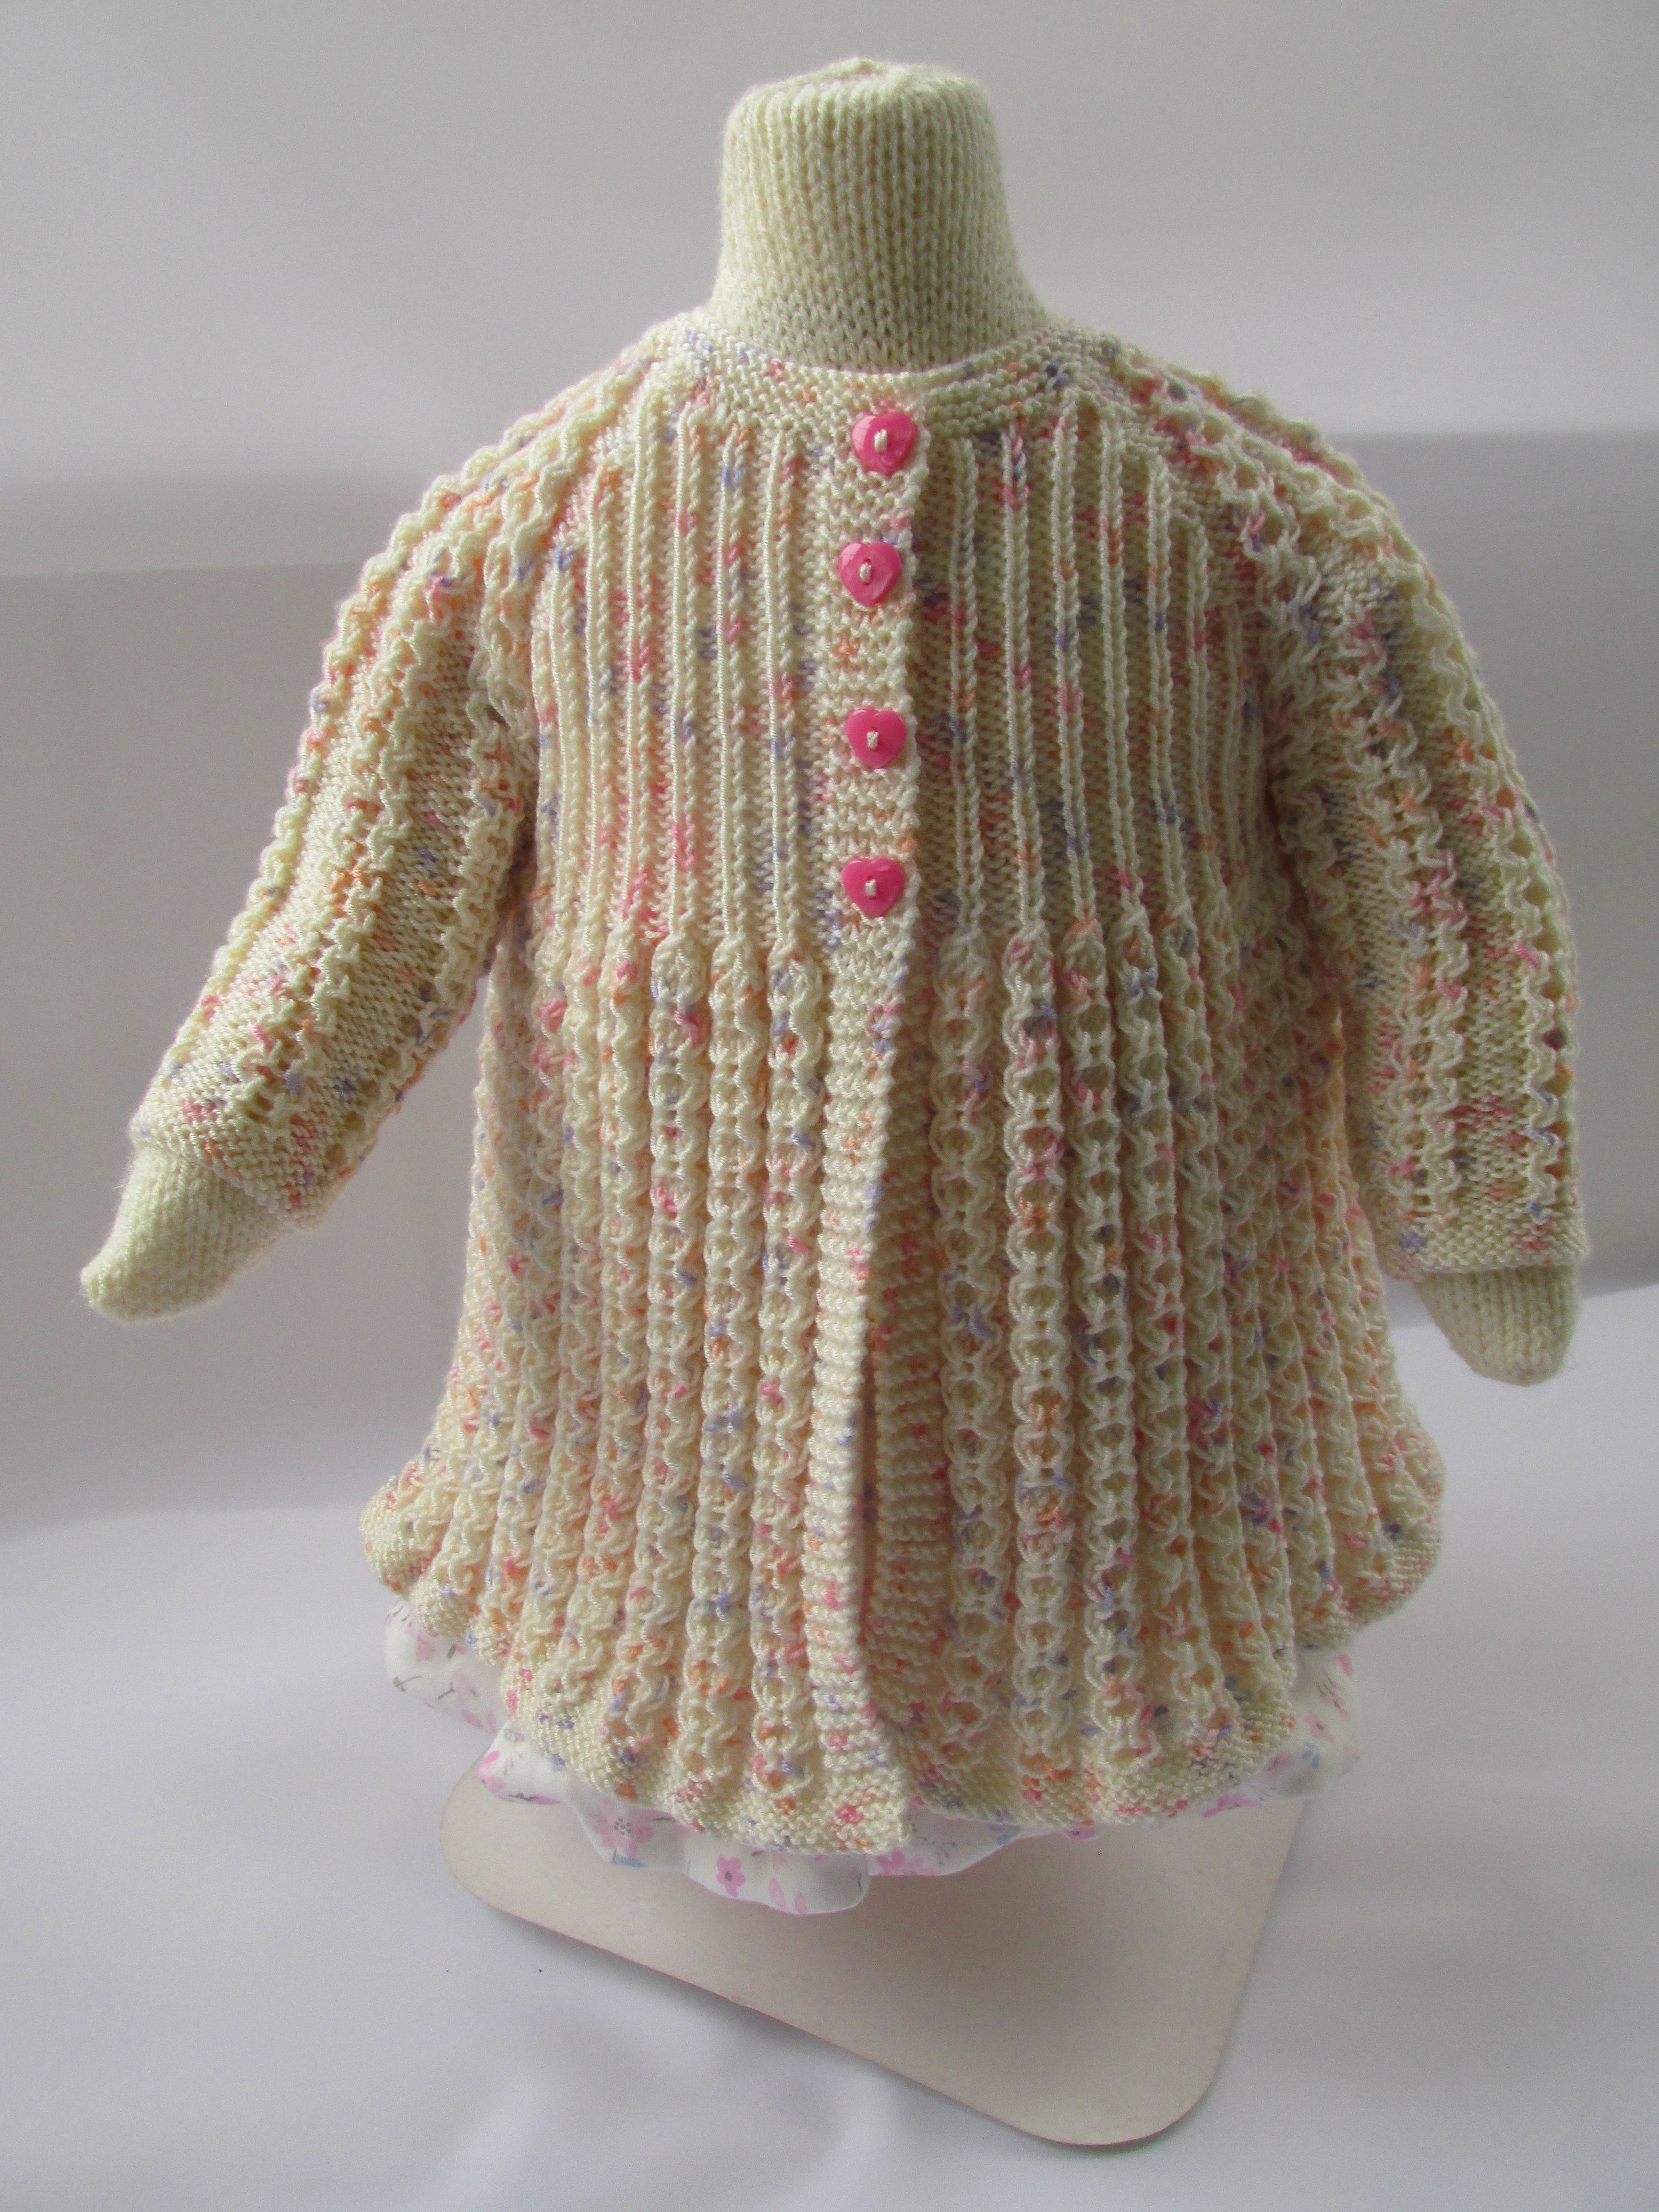 6c64b49bc Knitting pattern for a vintage inspired